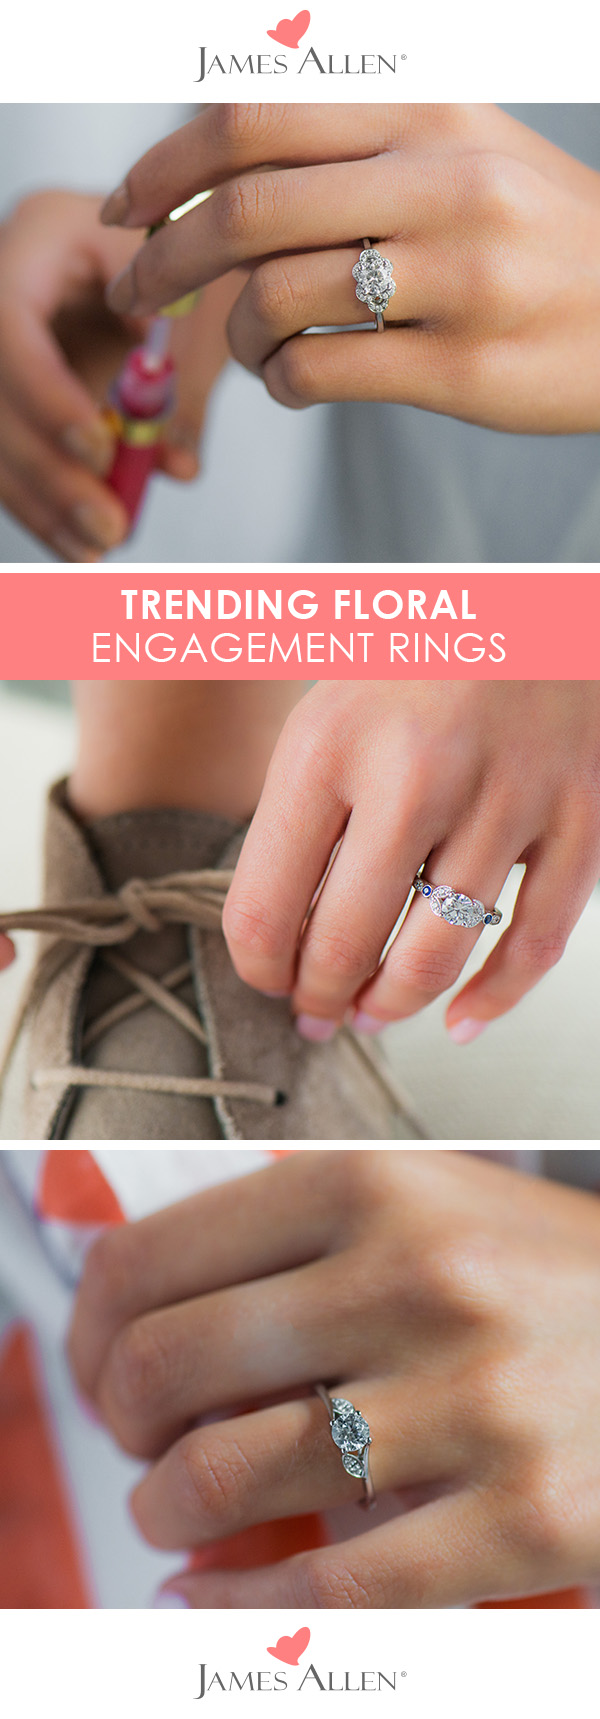 Trending floral engagement rings